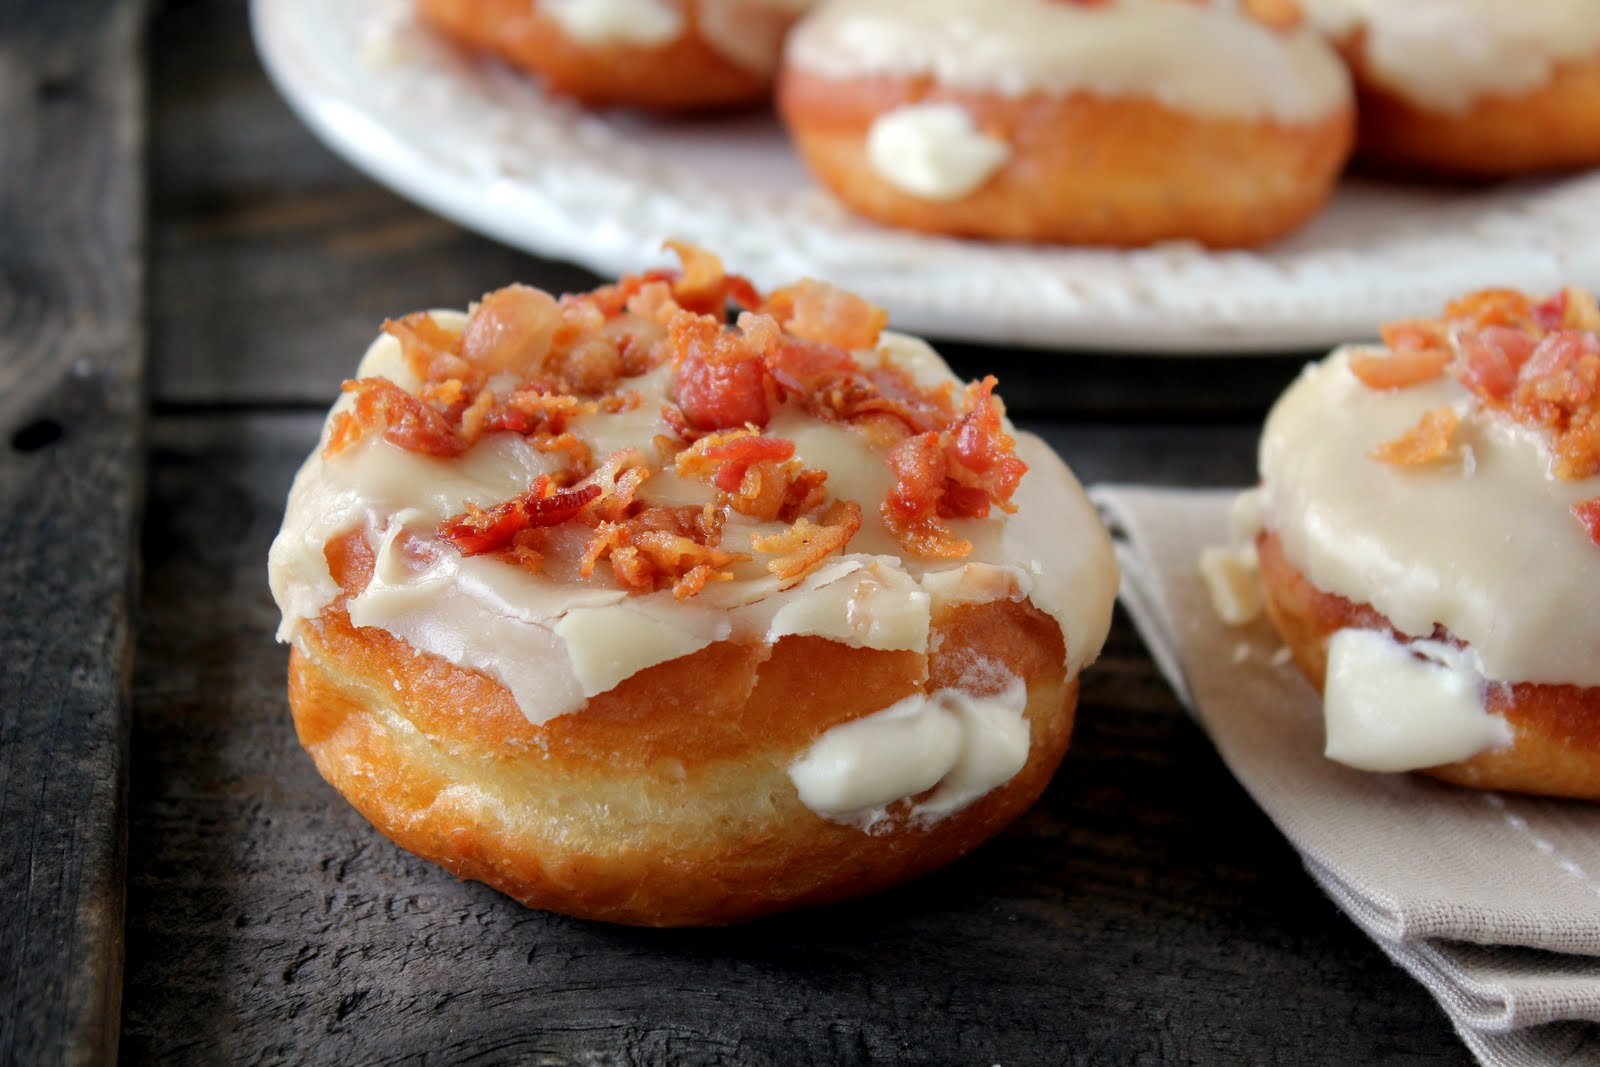 Maple Bacon Donuts recipe from cherryteacakes.com